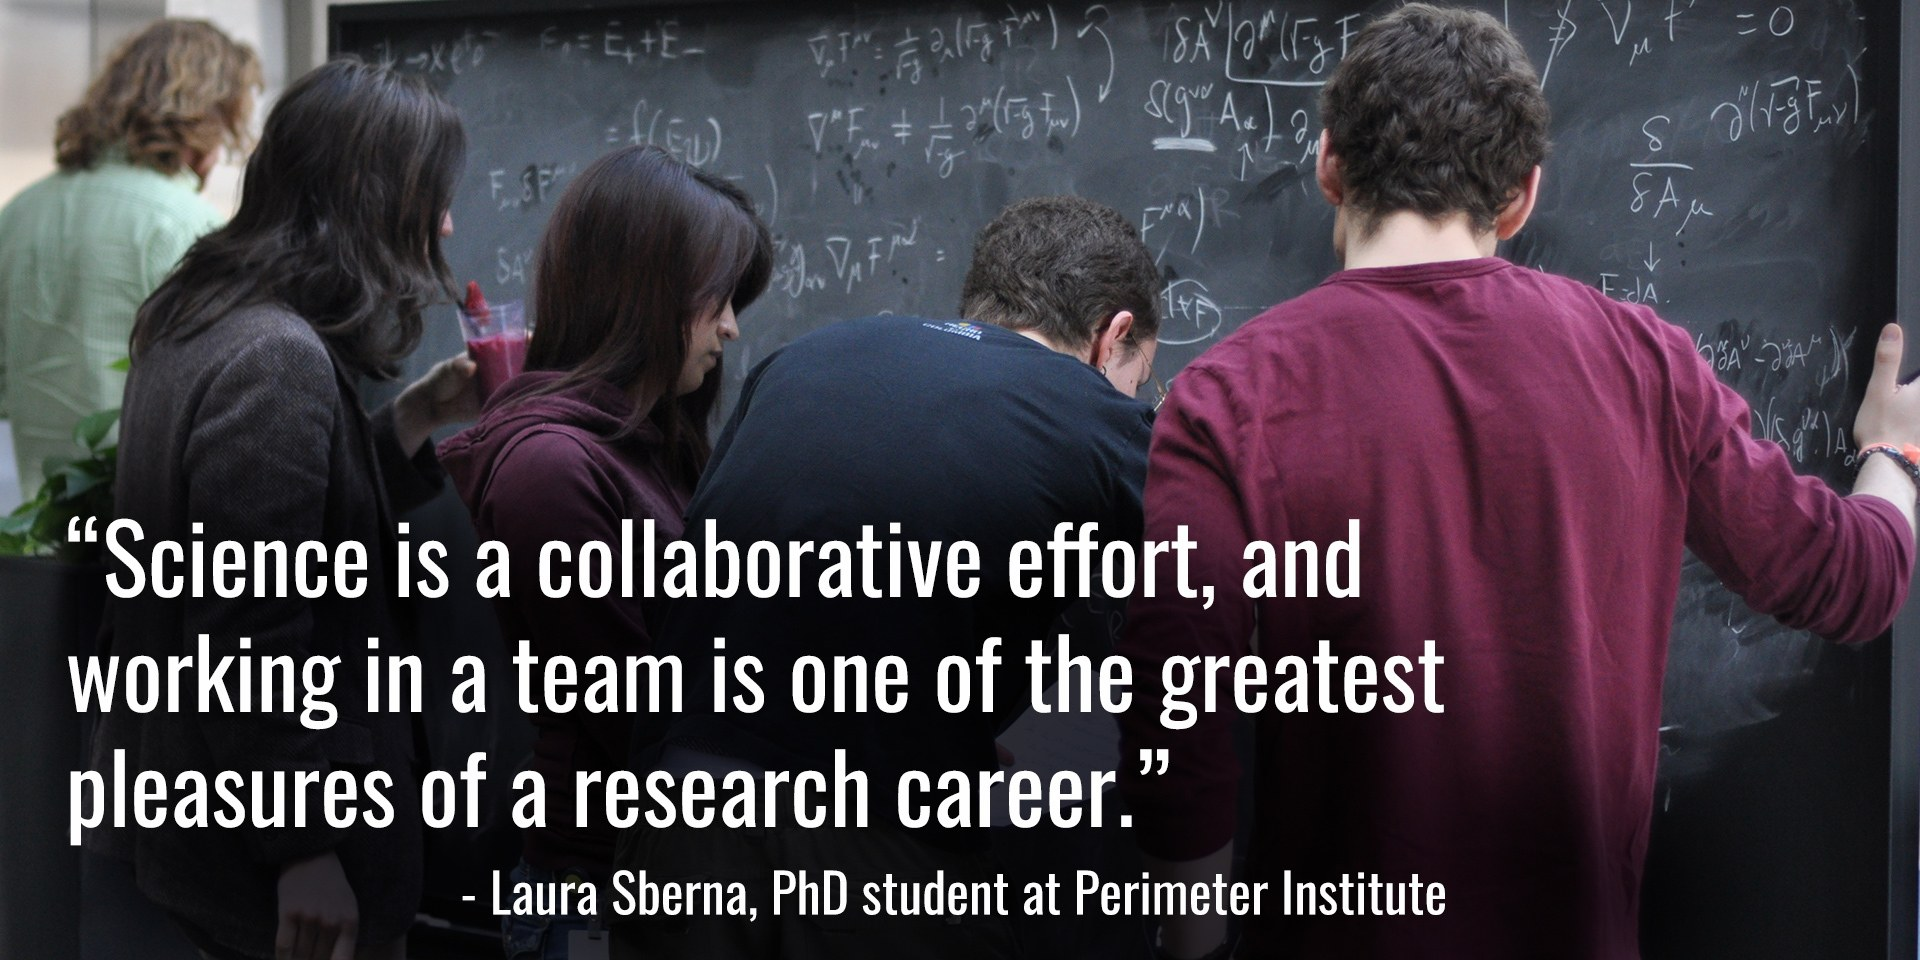 """""""Science is a collaborative effort, and working in a team is one of the greatest pleasures of a research career."""" - Laura Sberna, PhD student at Perimeter Institute"""